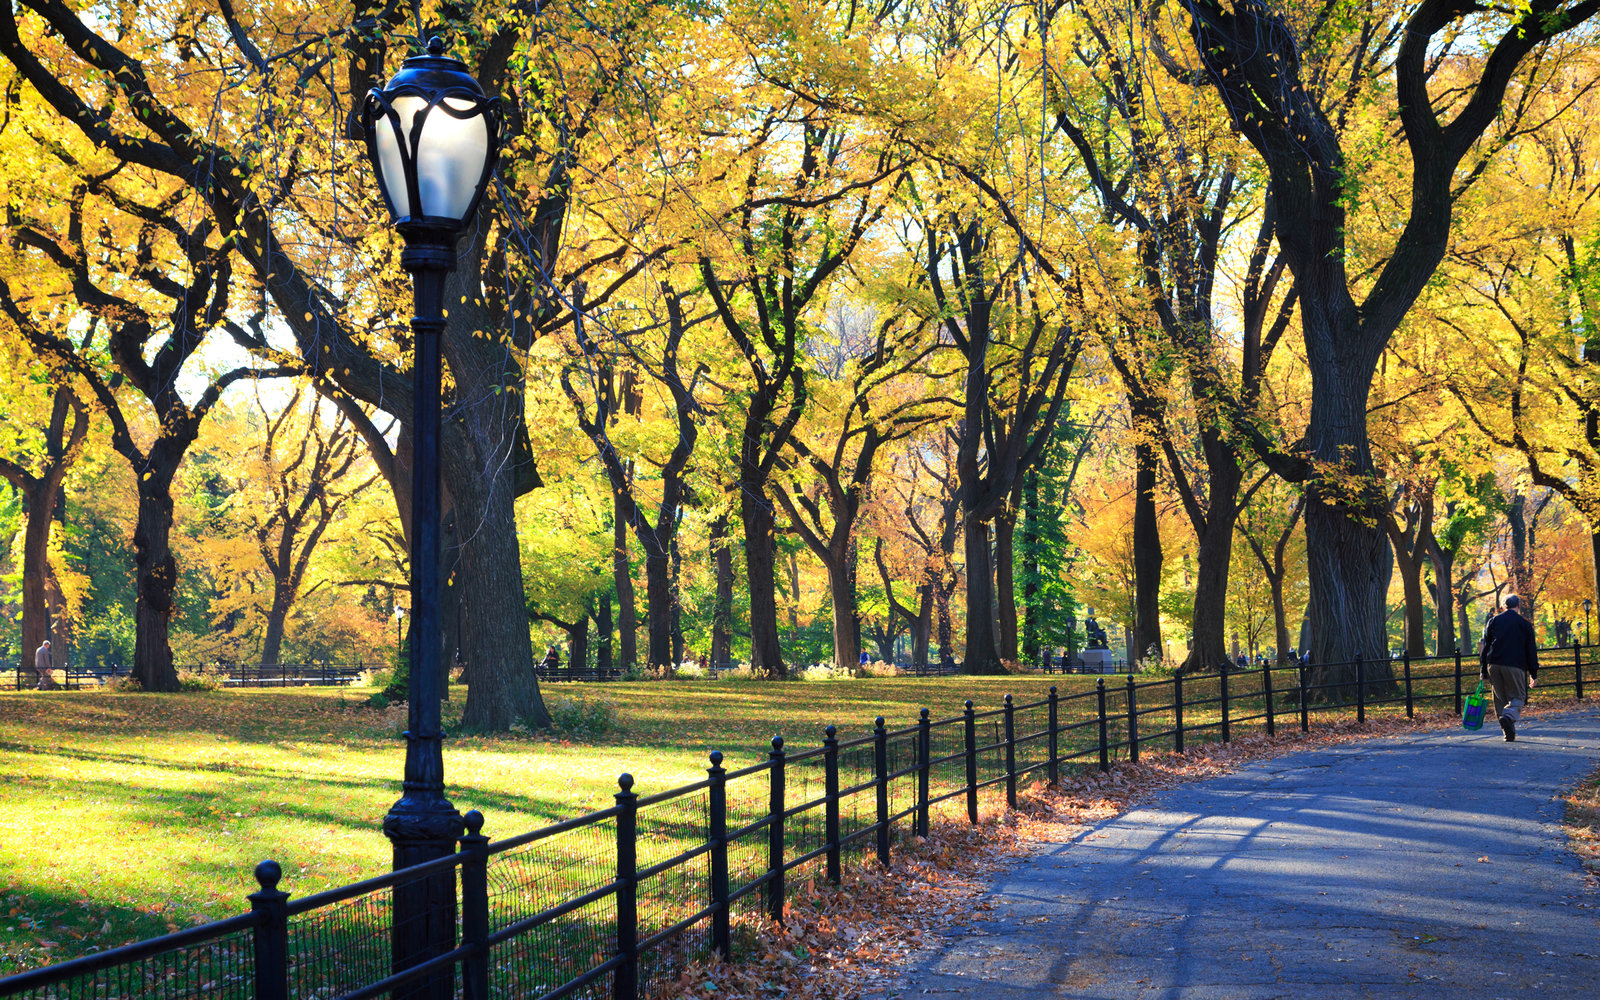 The One Trick You Need to Know Before Visiting Central Park